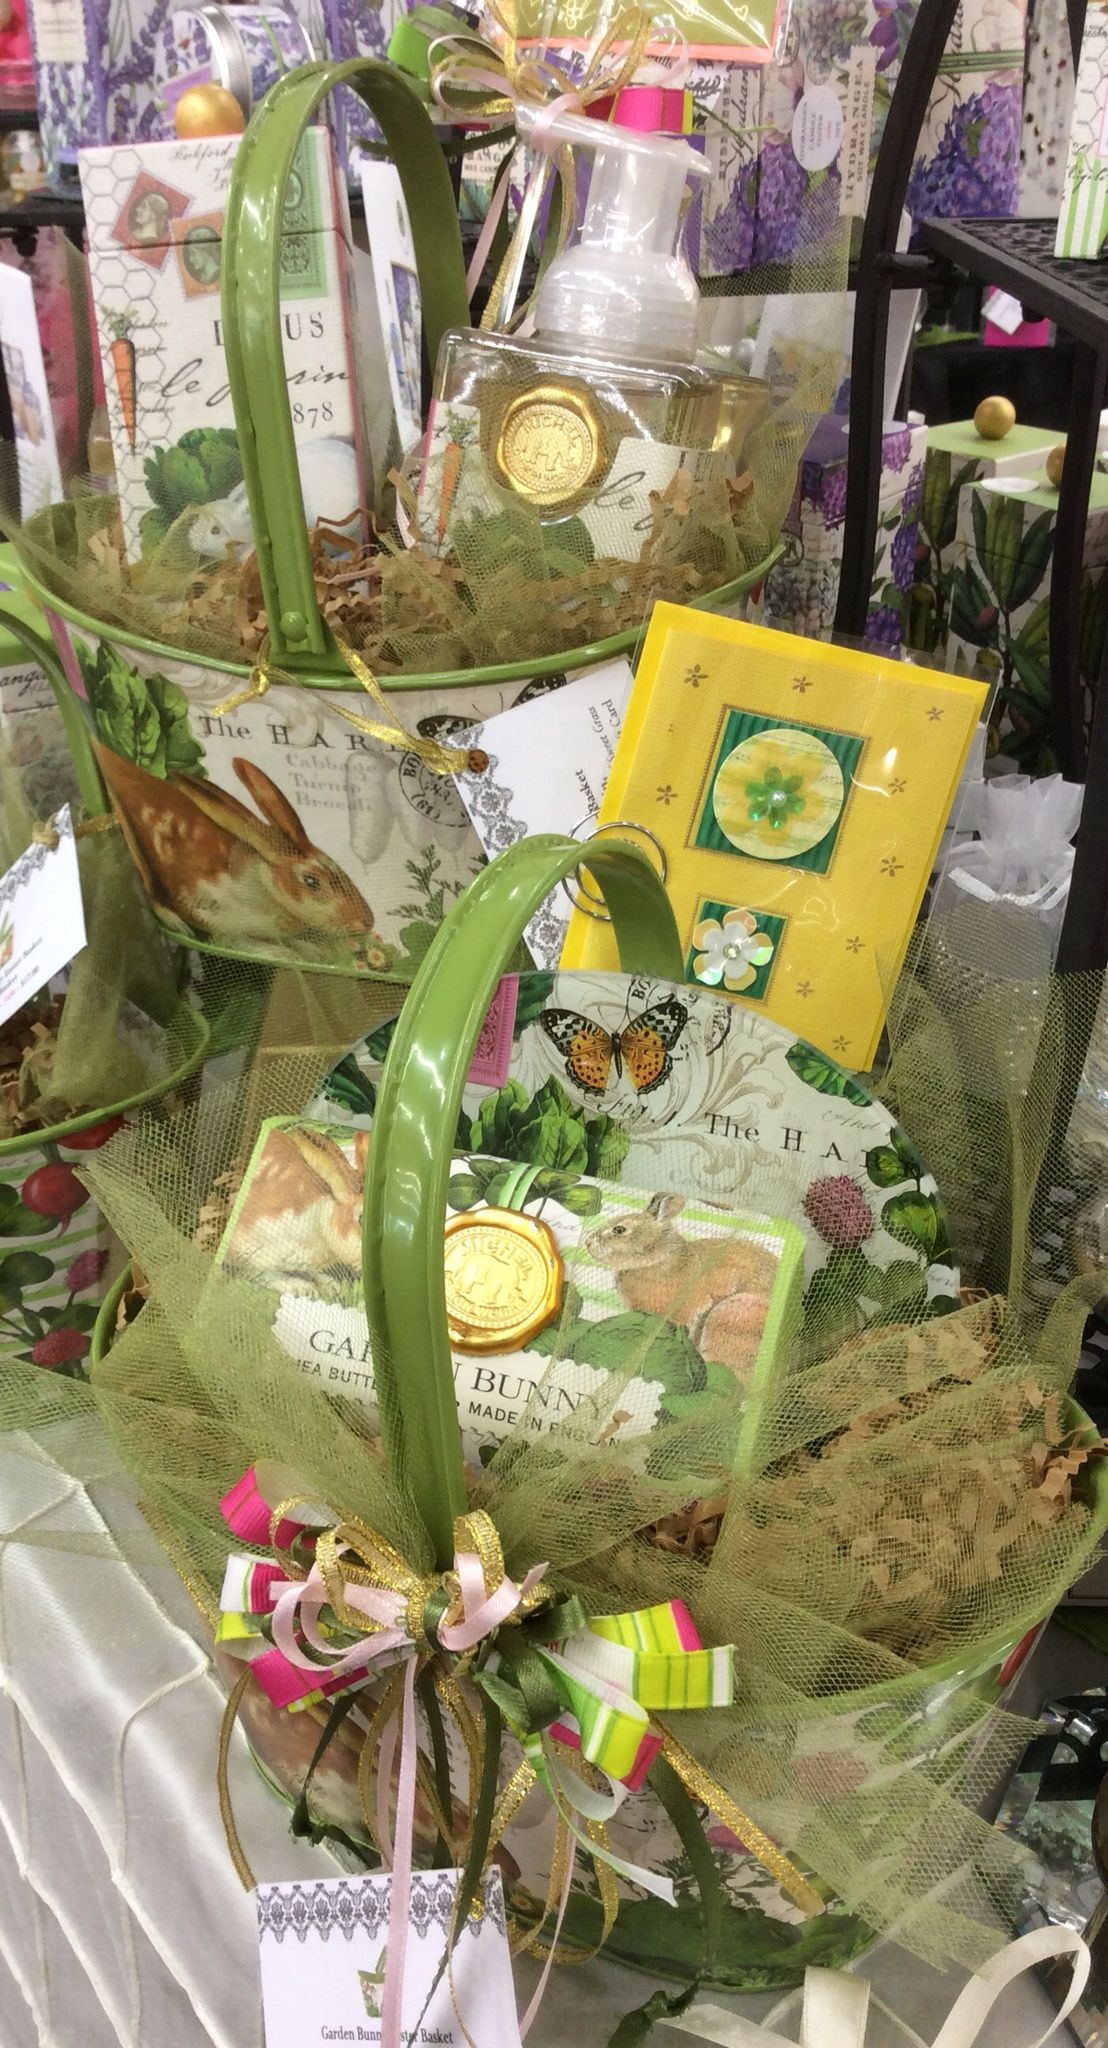 Tin Easter Baskets filled with Garden Bunny by Michele